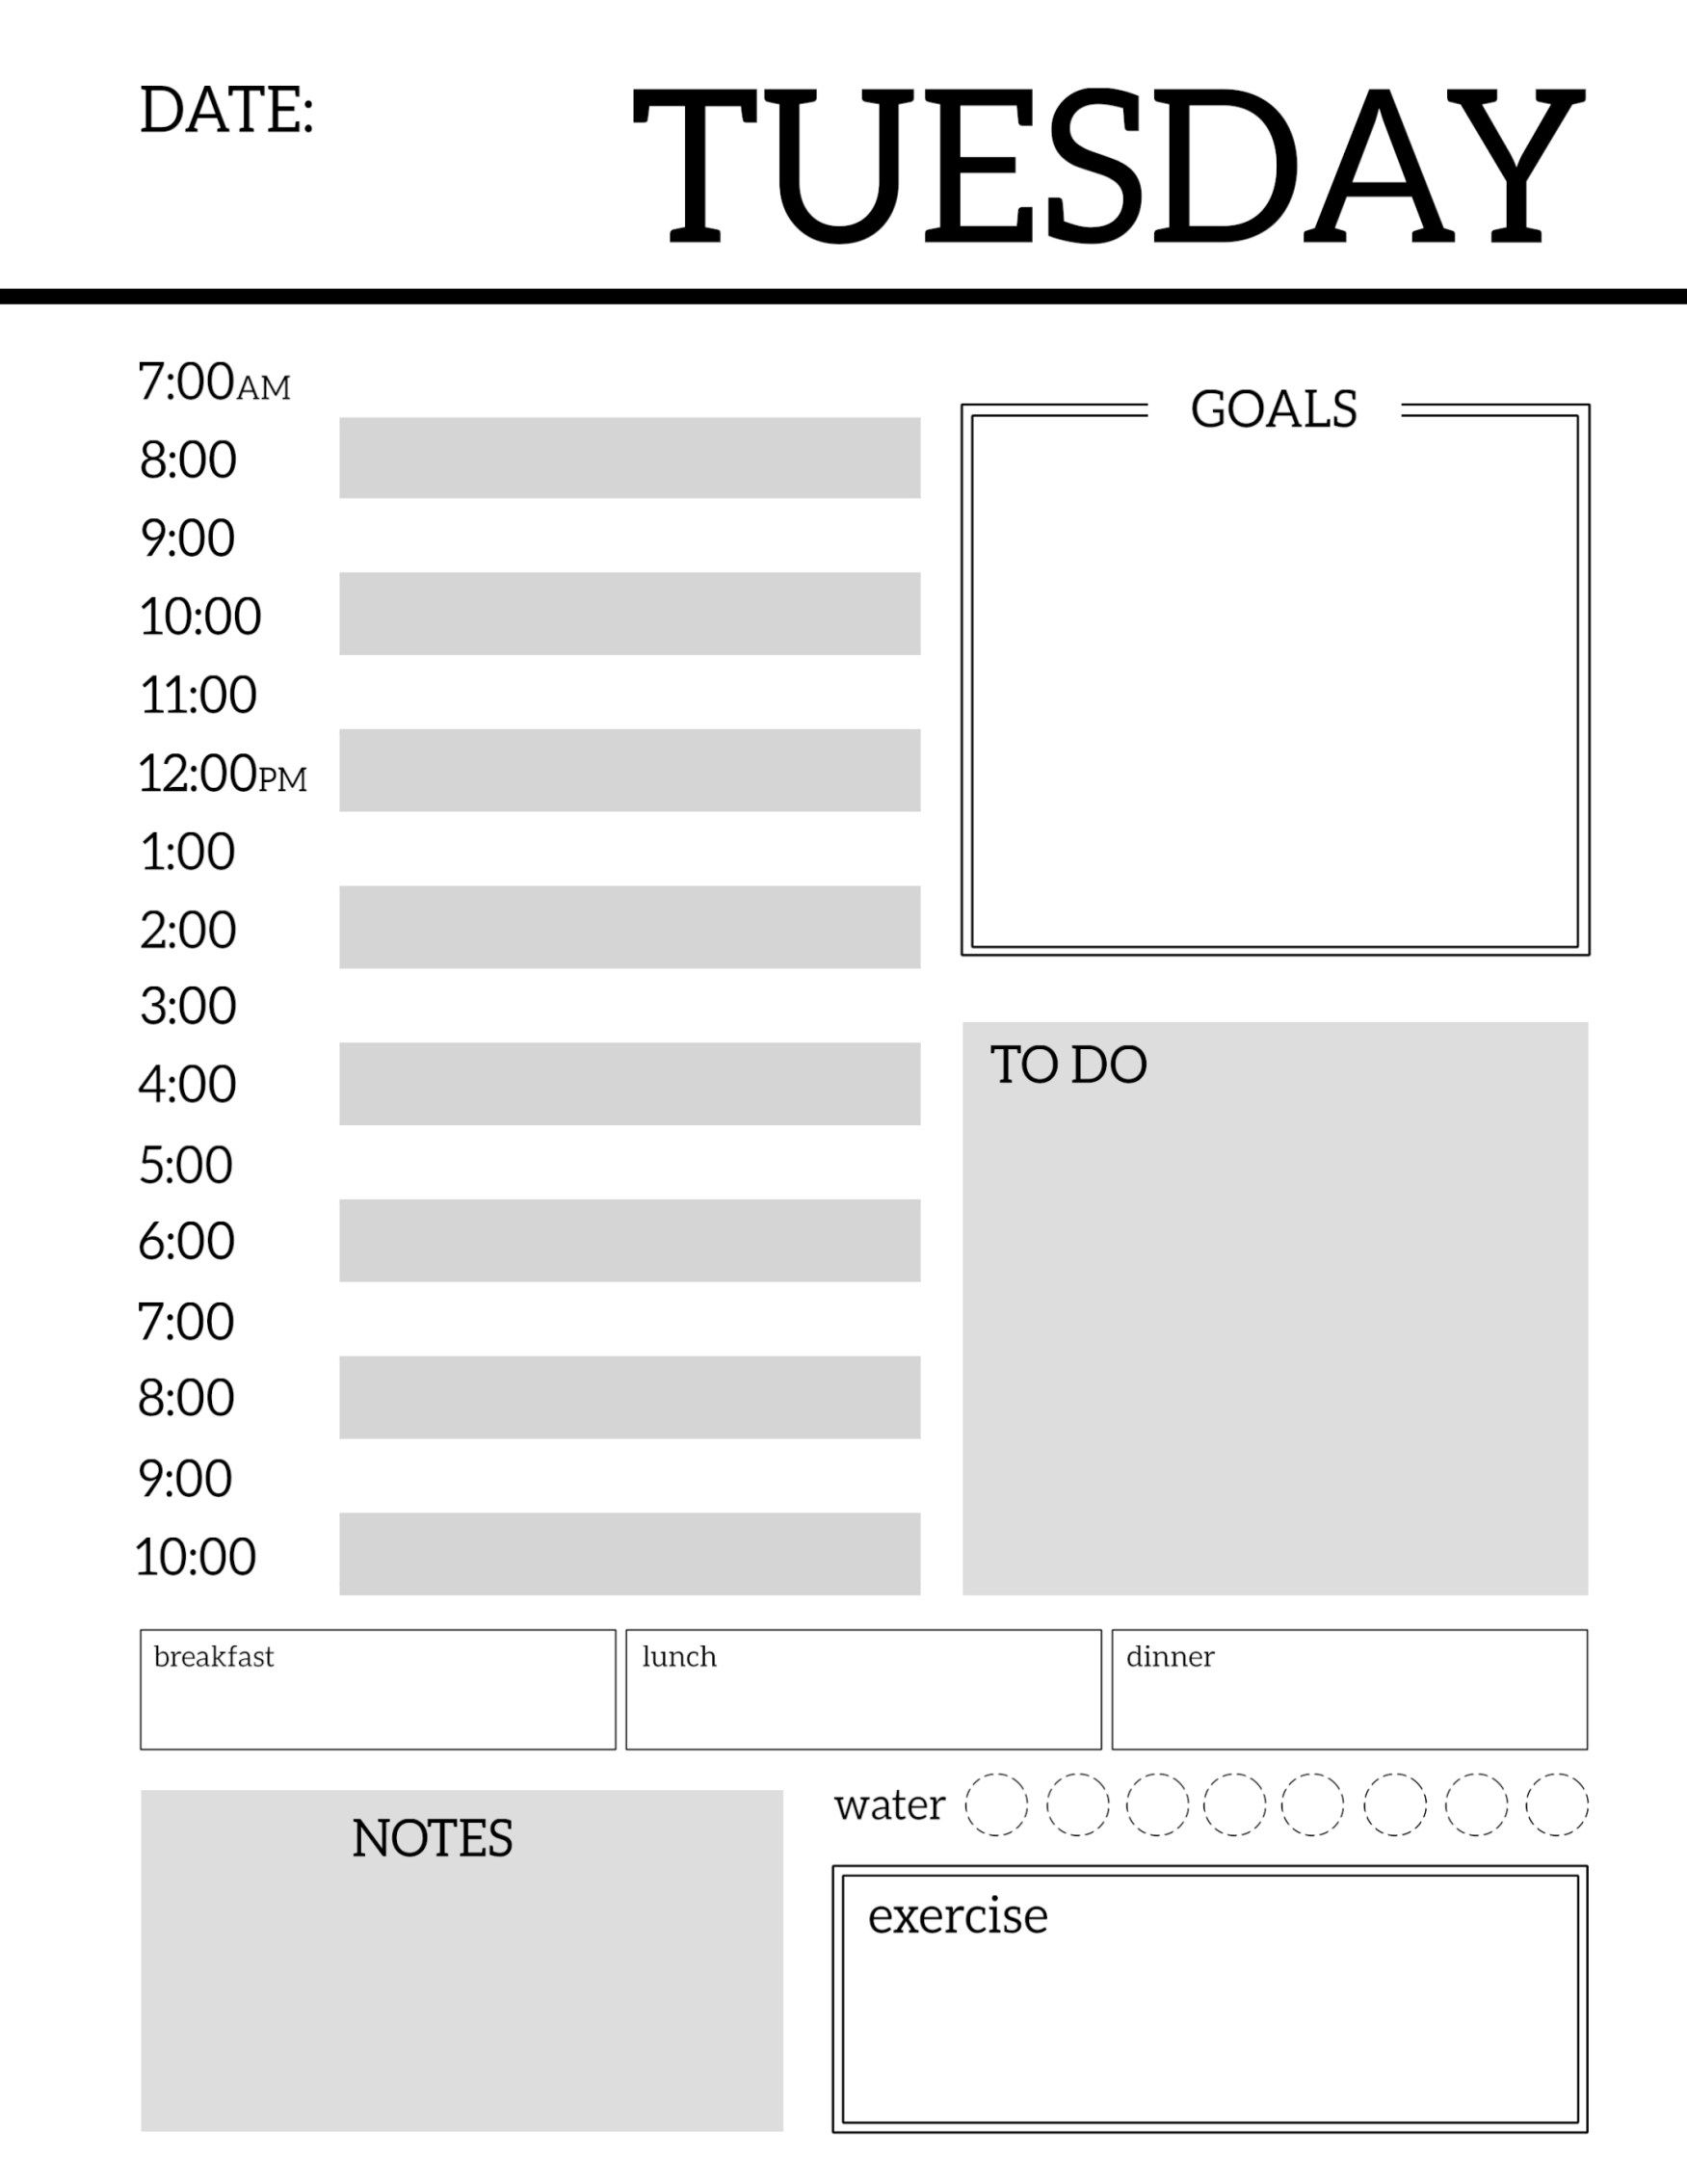 daily planner printable template sheets free daily planner pages to build your own organizer or just keep a to do list for the day